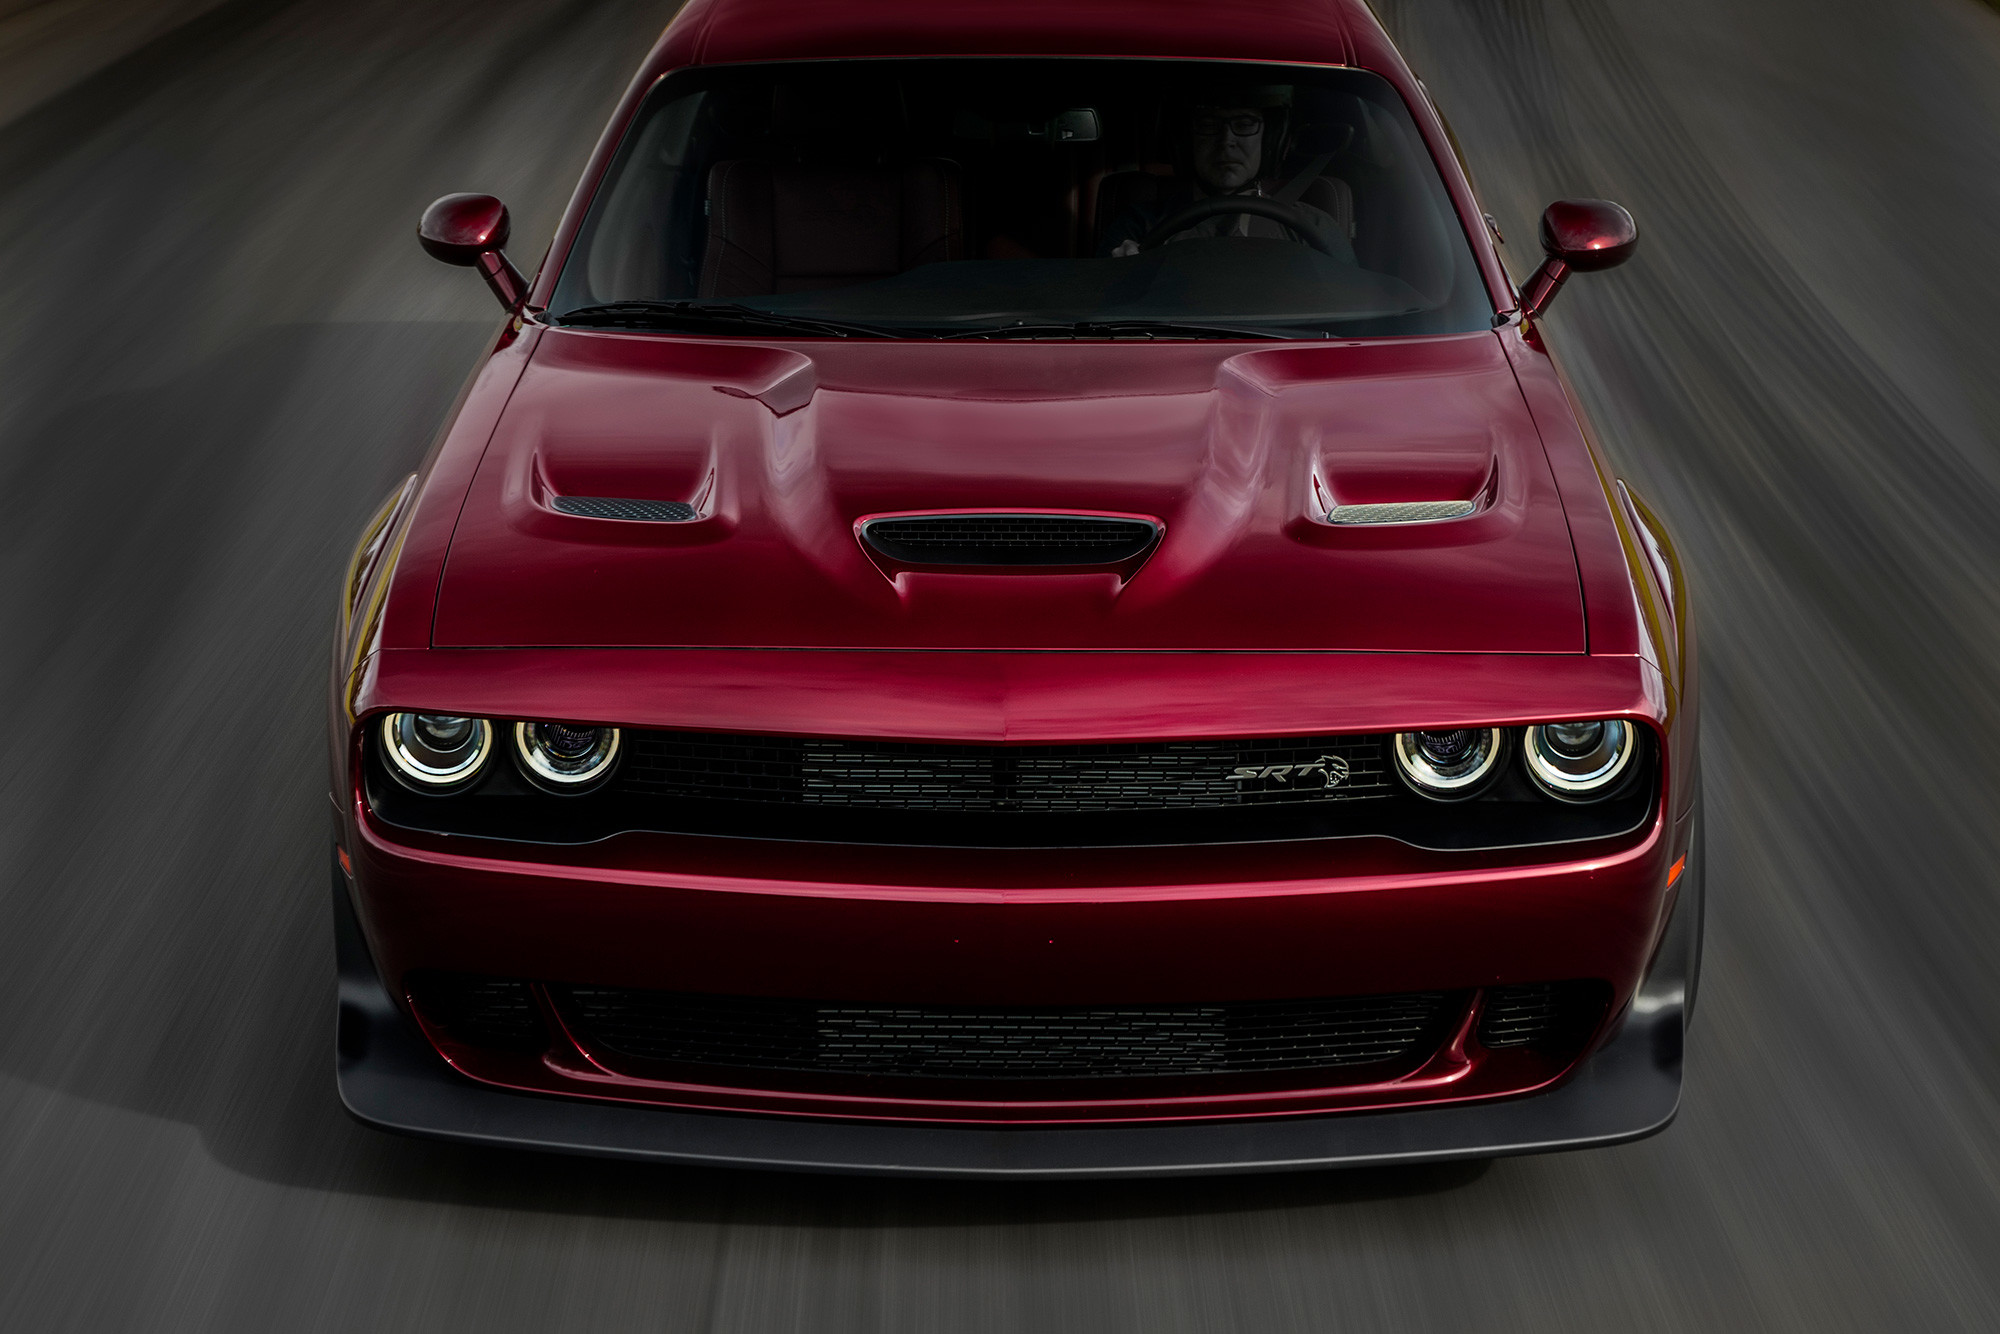 Res: 2000x1334, Dodge Challenger SRT Hellcat Widebody 2018